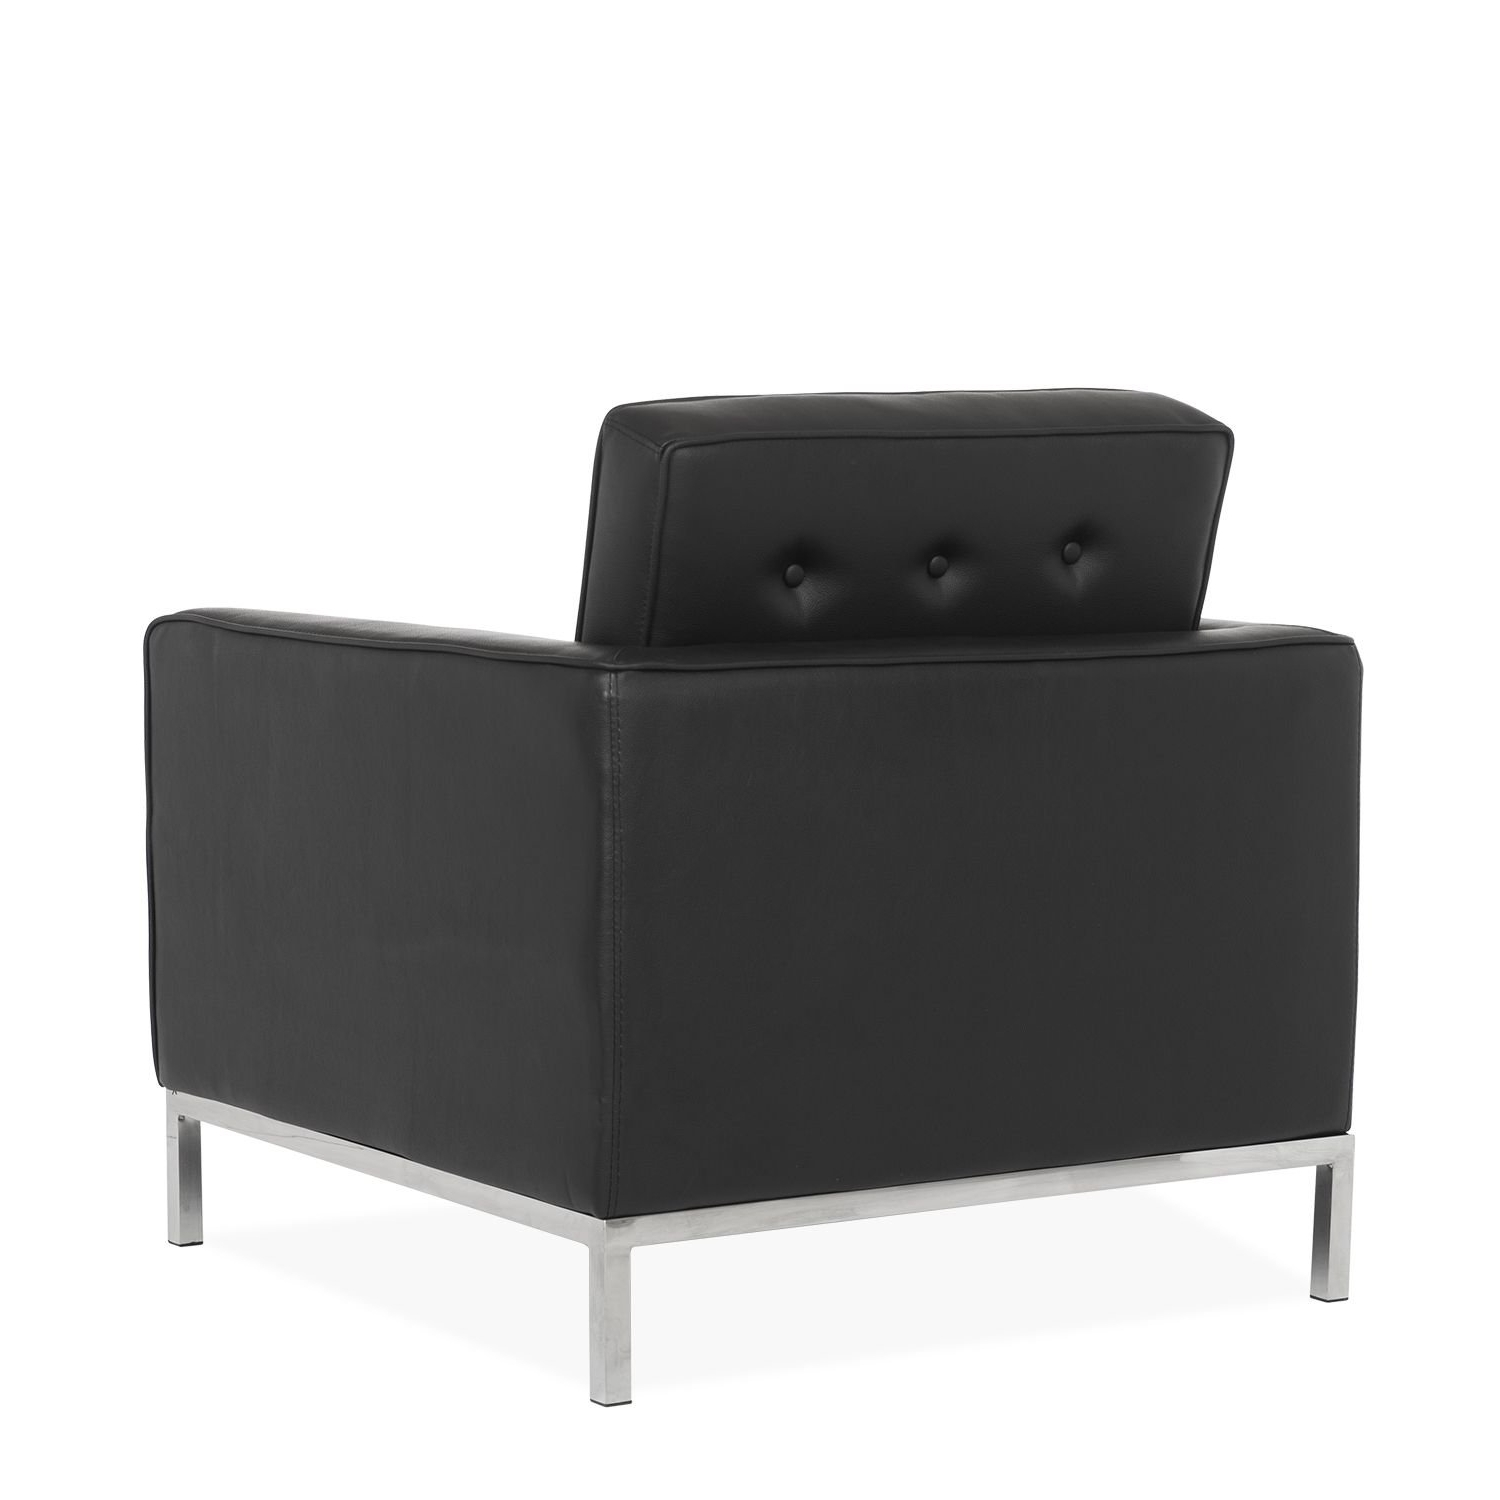 Widely Used Armchair : Sofa Chairs For Living Room Chair Walmart Single Sofa Throughout Sofa Chairs For Living Room (View 19 of 20)